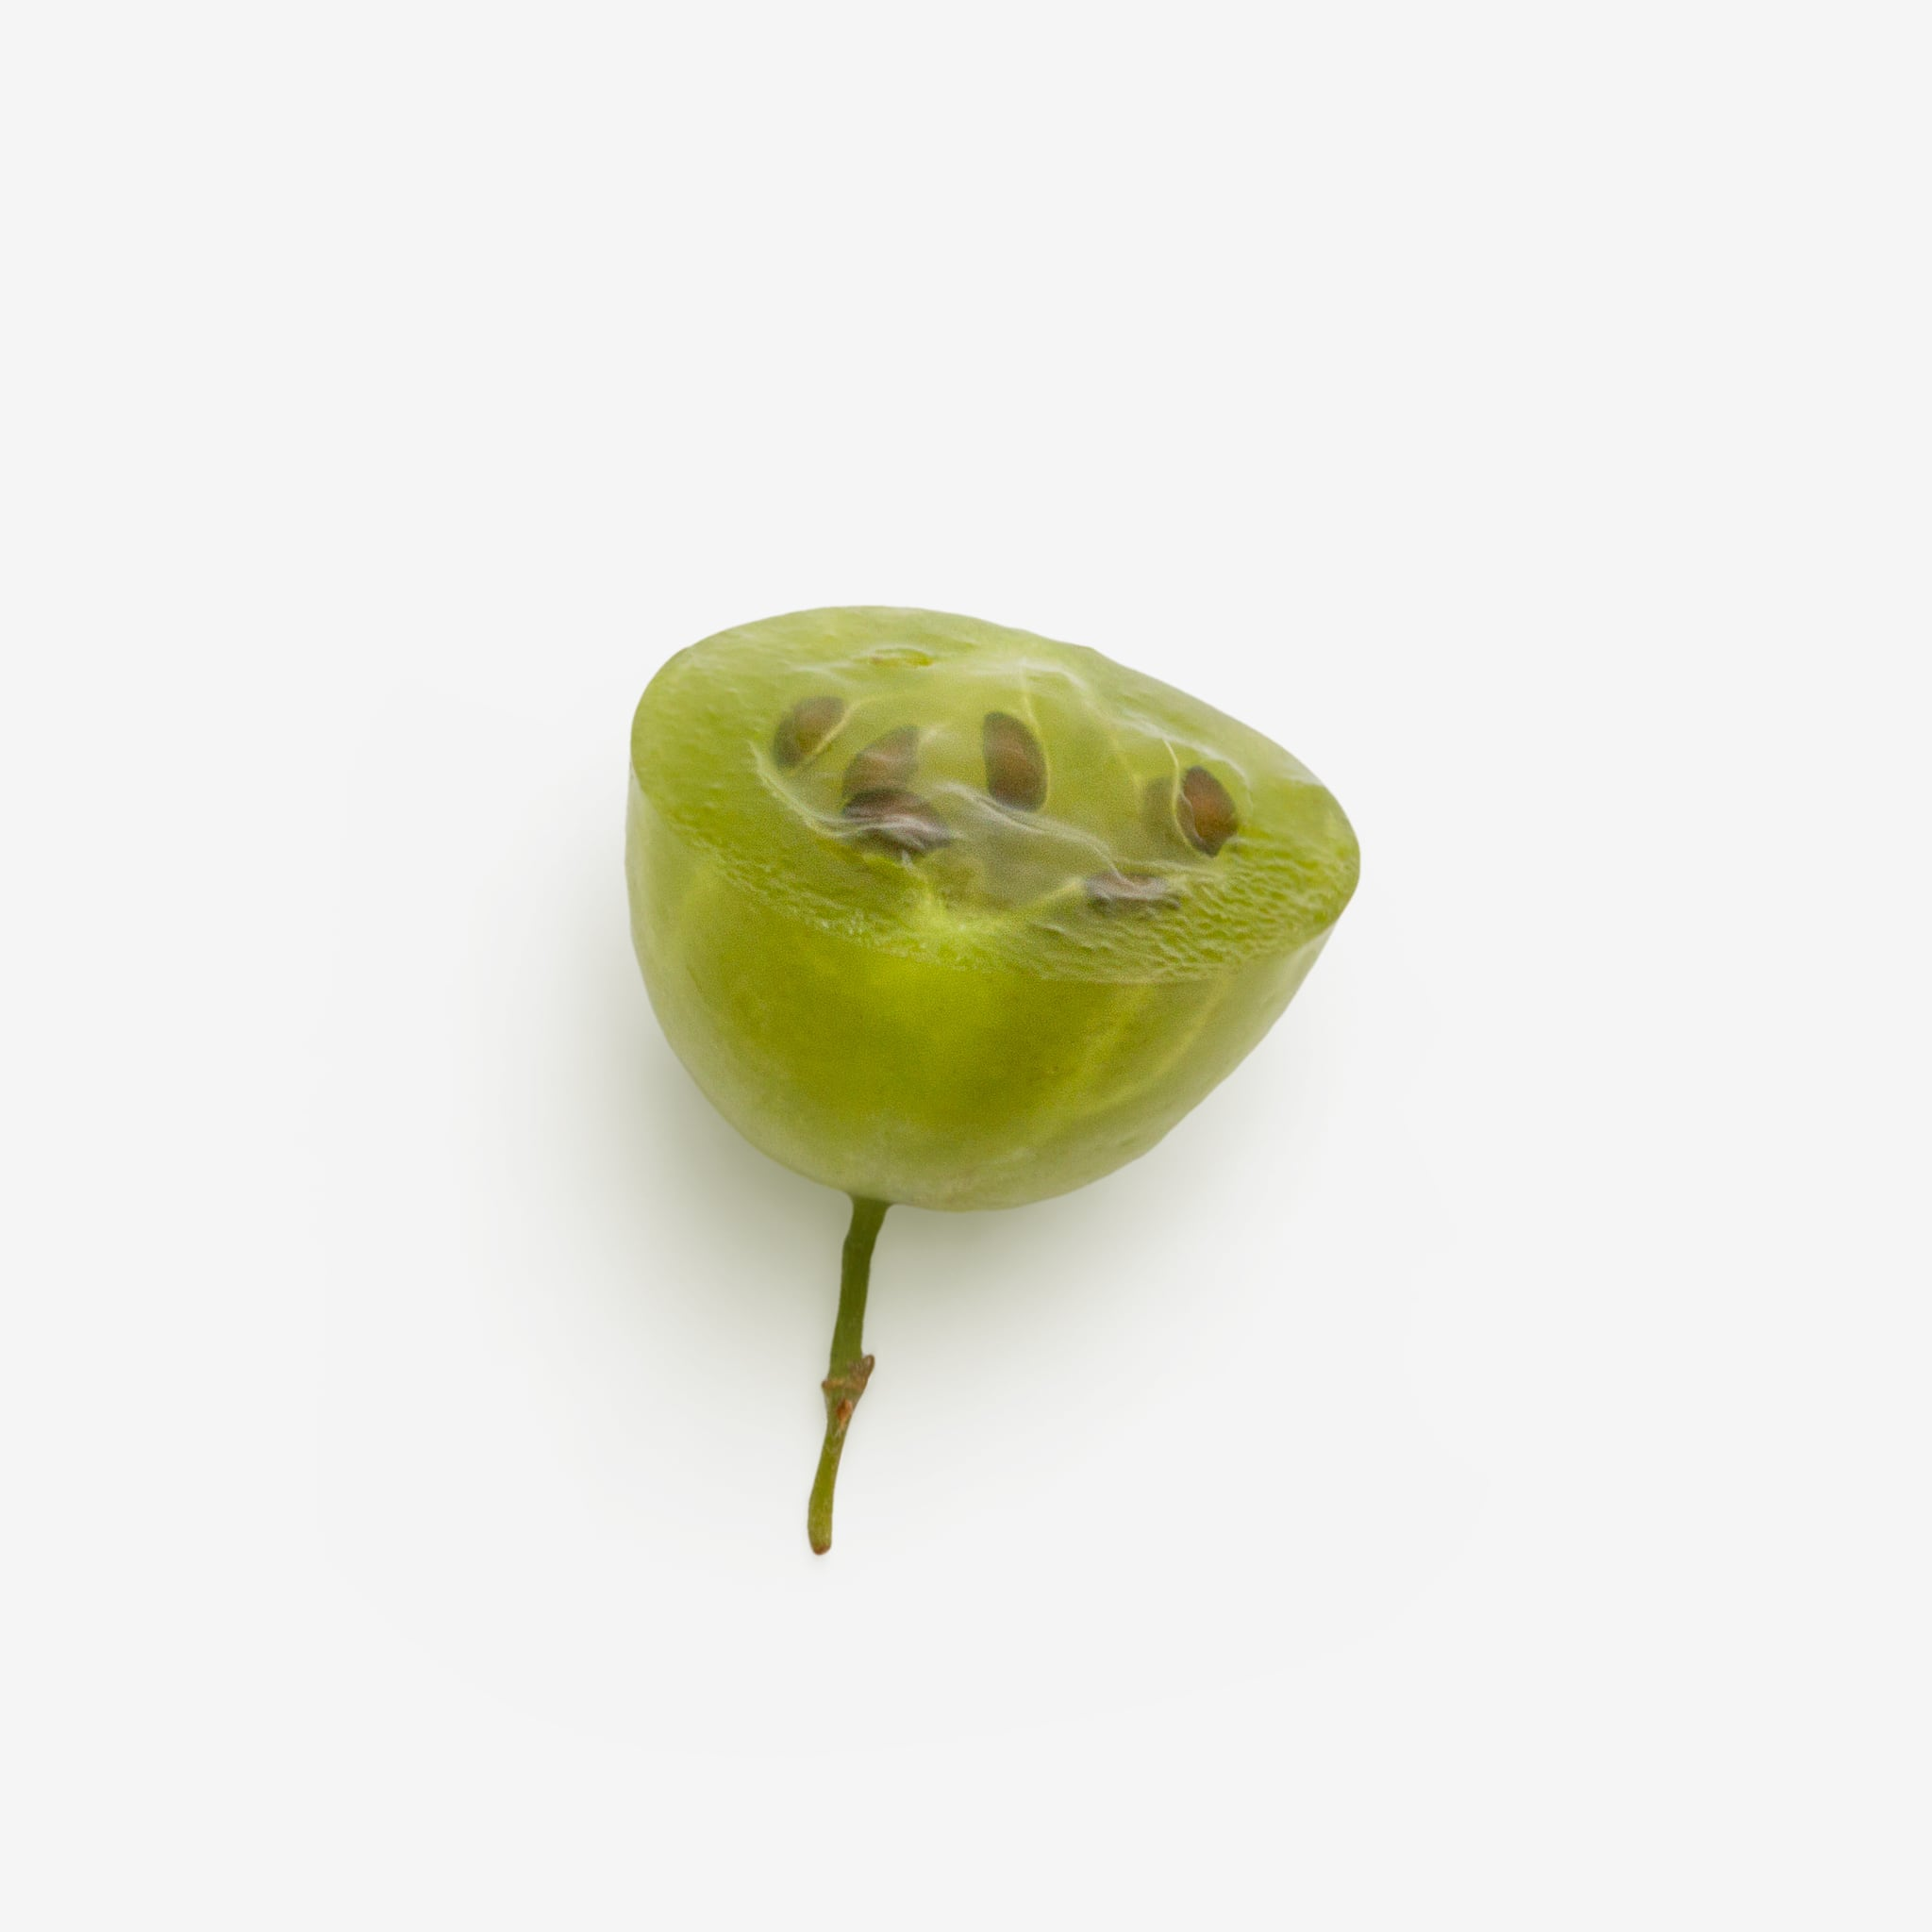 Gooseberry PSD image with transparent background